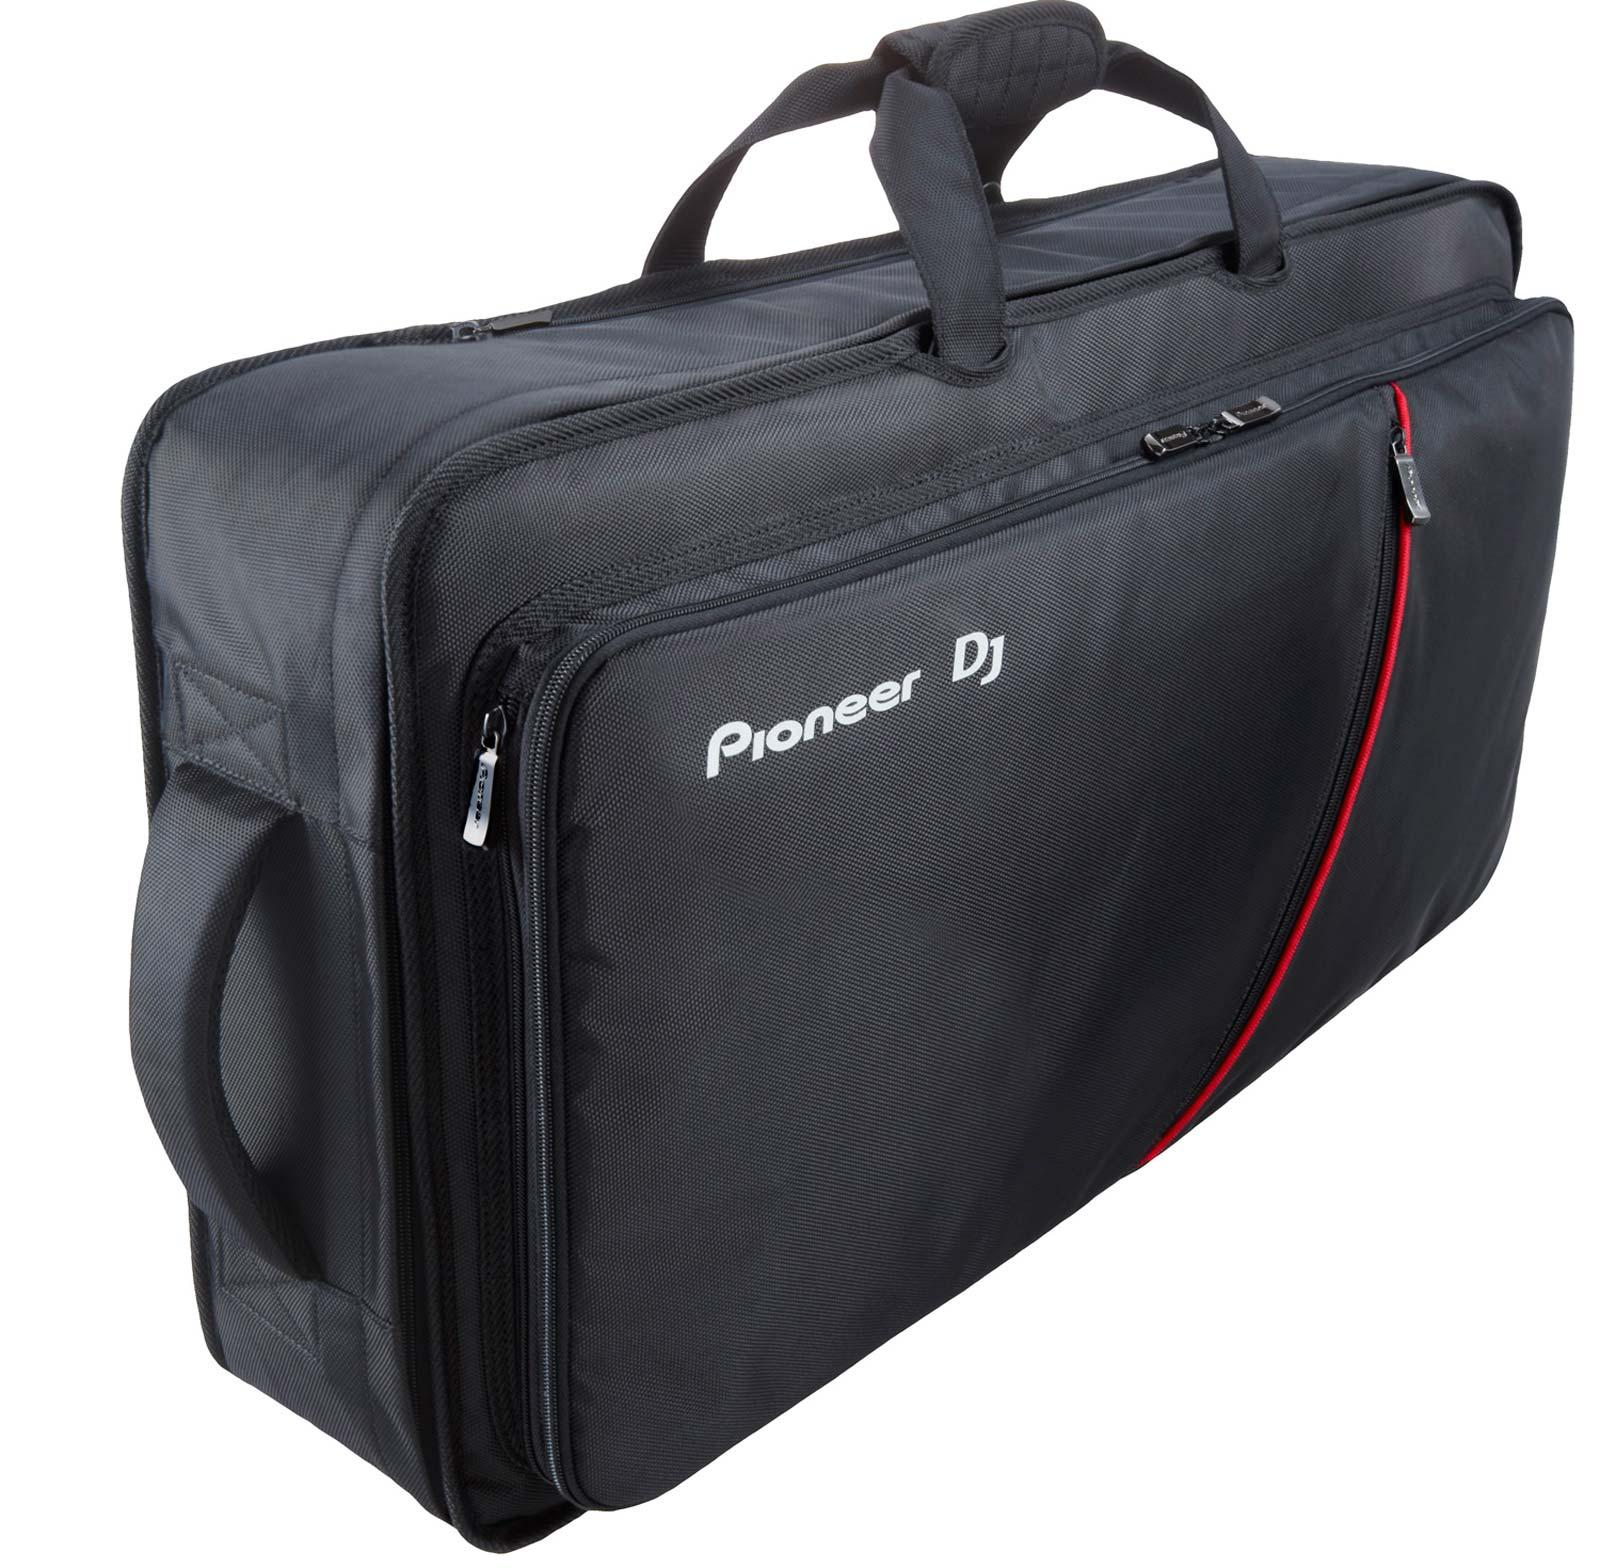 pioneer djc sc5 soft case bag backpack for ddj sx ddj t1 ddj s1 agiprodj. Black Bedroom Furniture Sets. Home Design Ideas